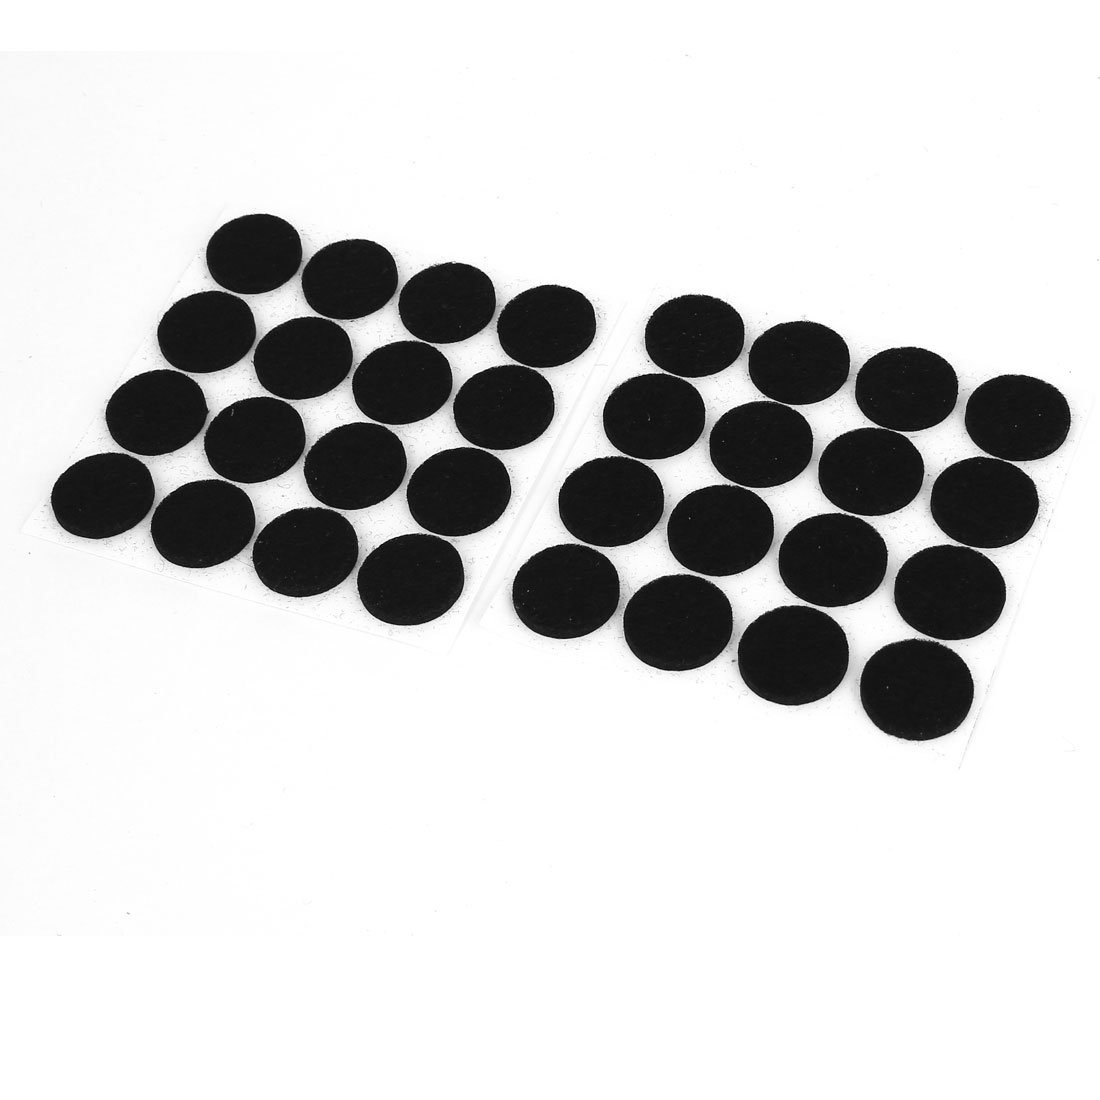 32pcs 18mm Round Felt Pads Furniture Floor Self Adhesive Scratch Protection Mats